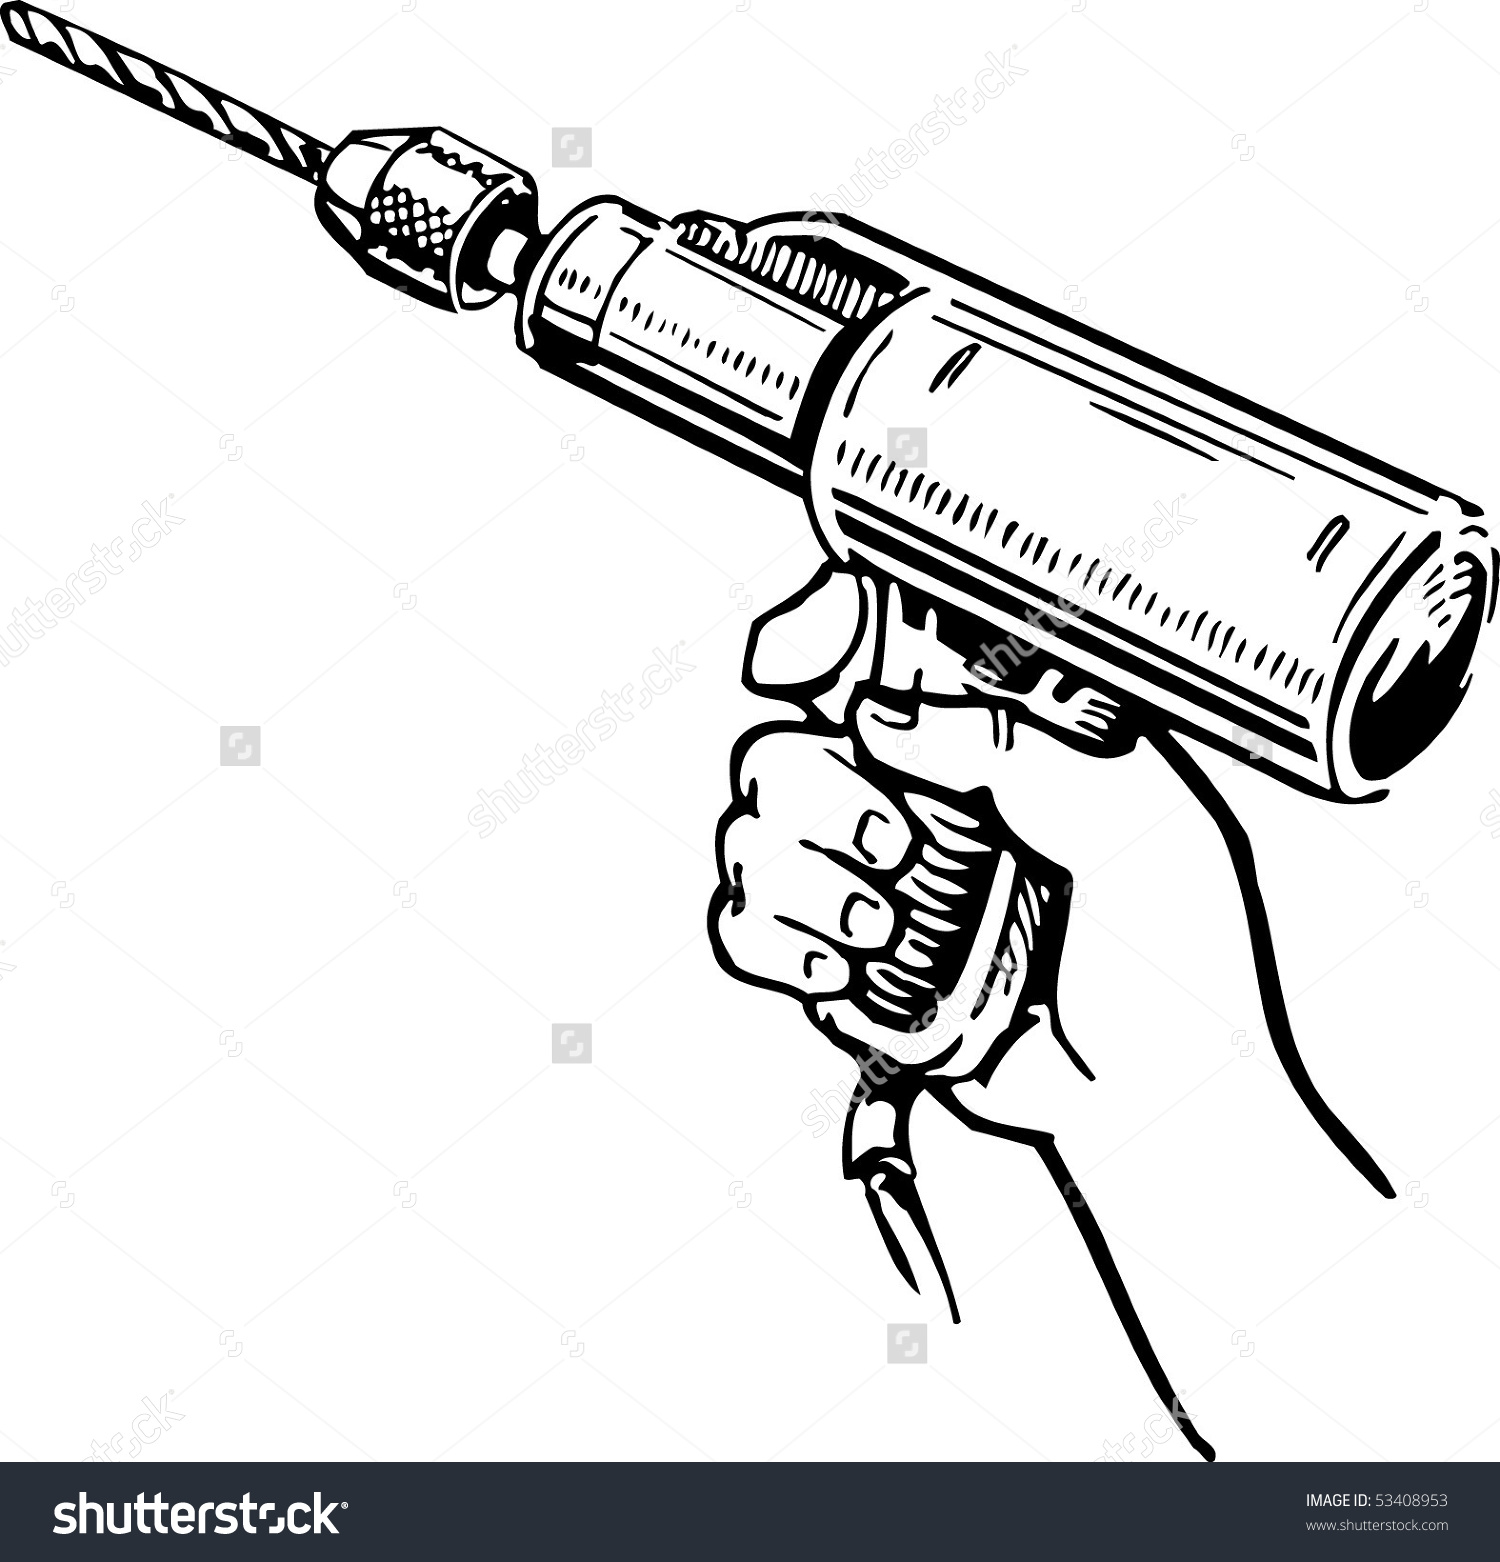 Worker Holding Electric Hand Drill Stock Vector 53408953.